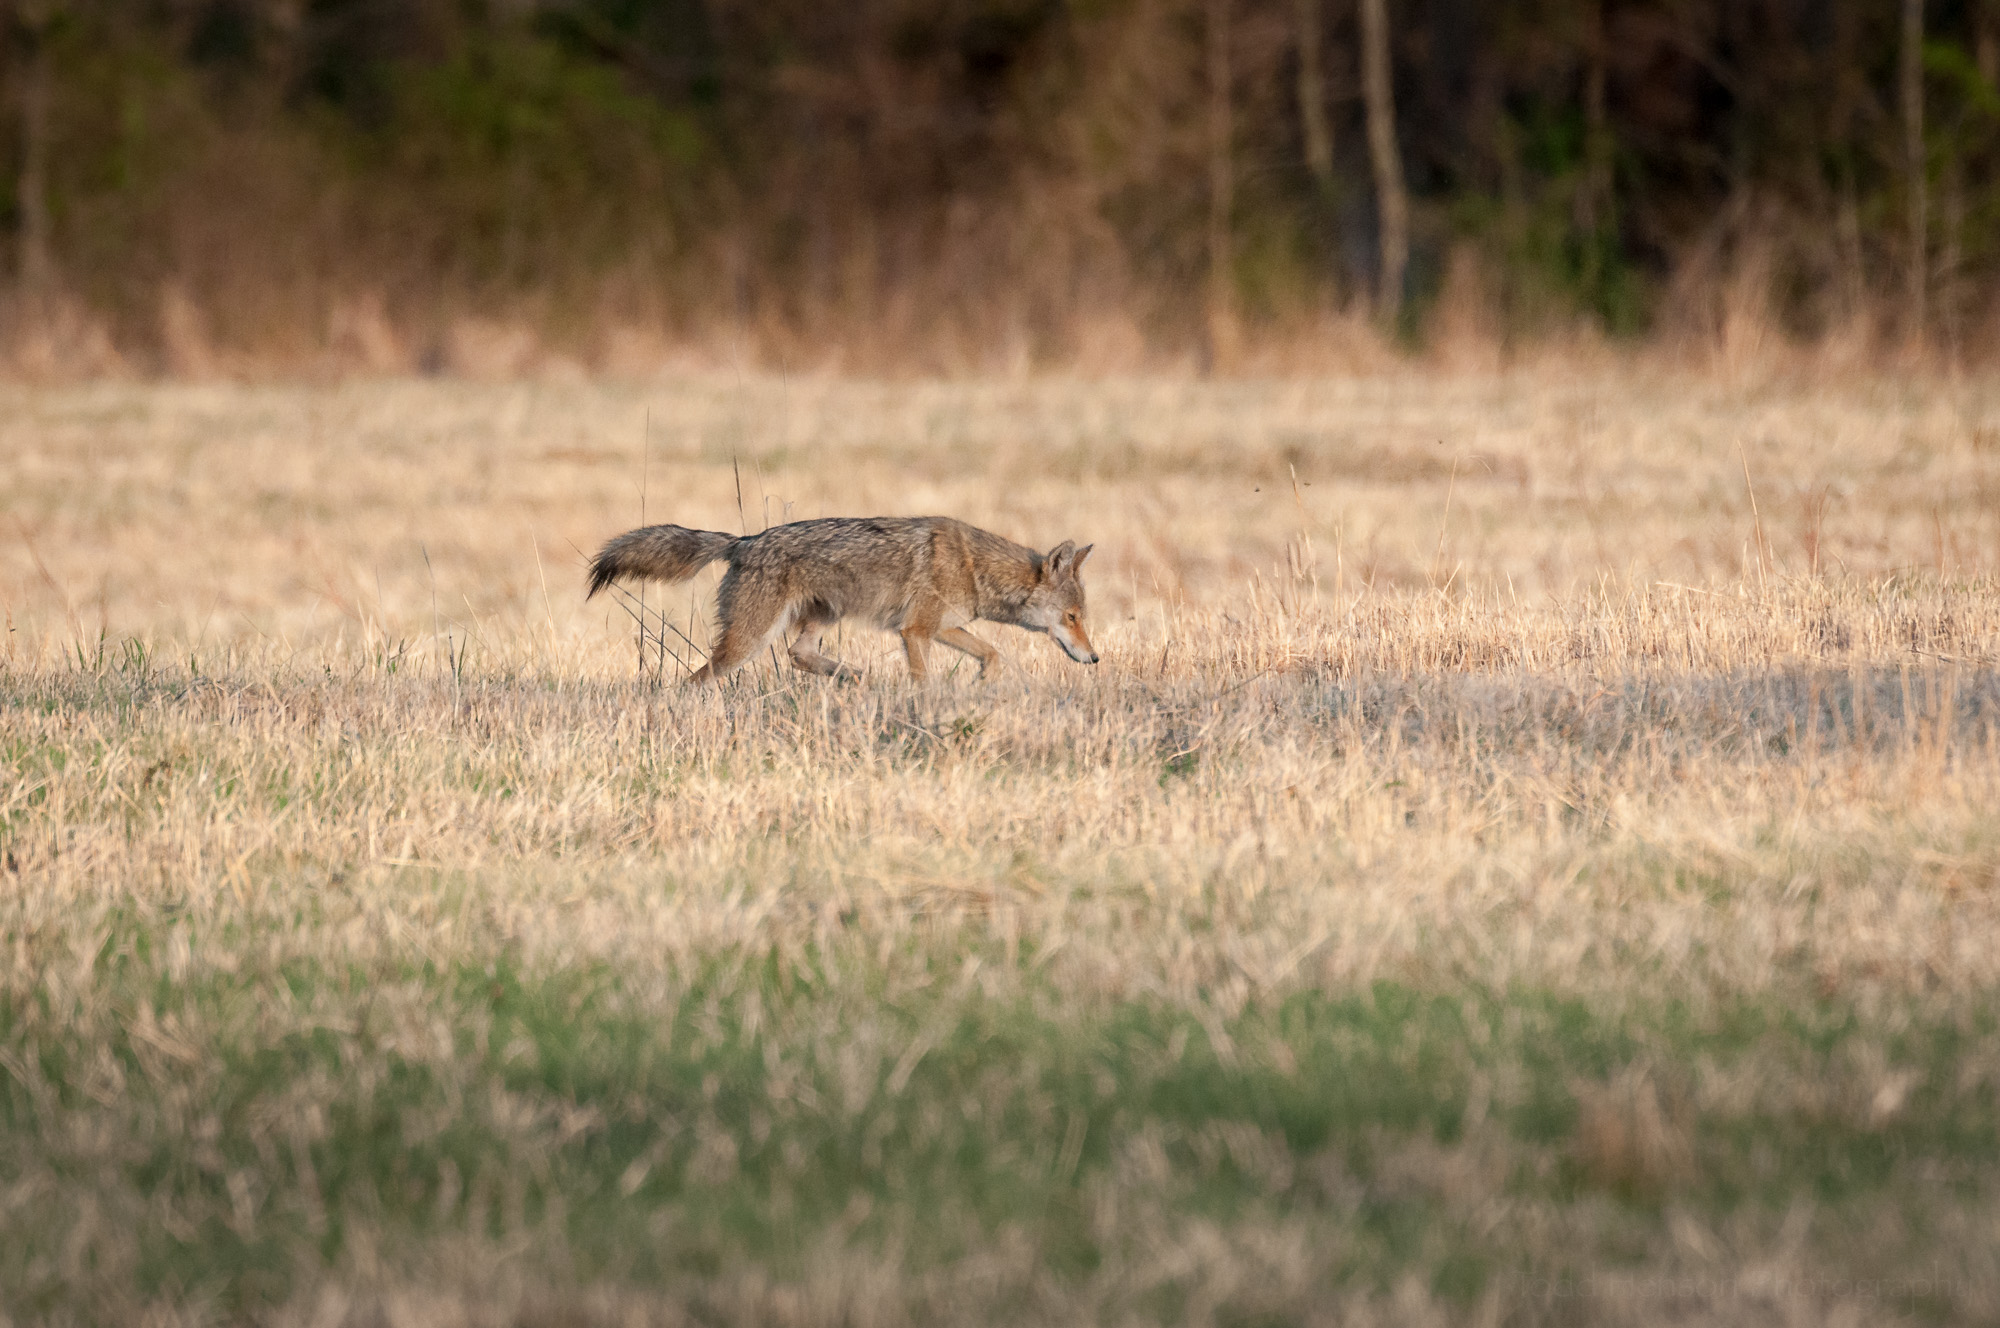 Coyote walking parallel to me, tail straight out